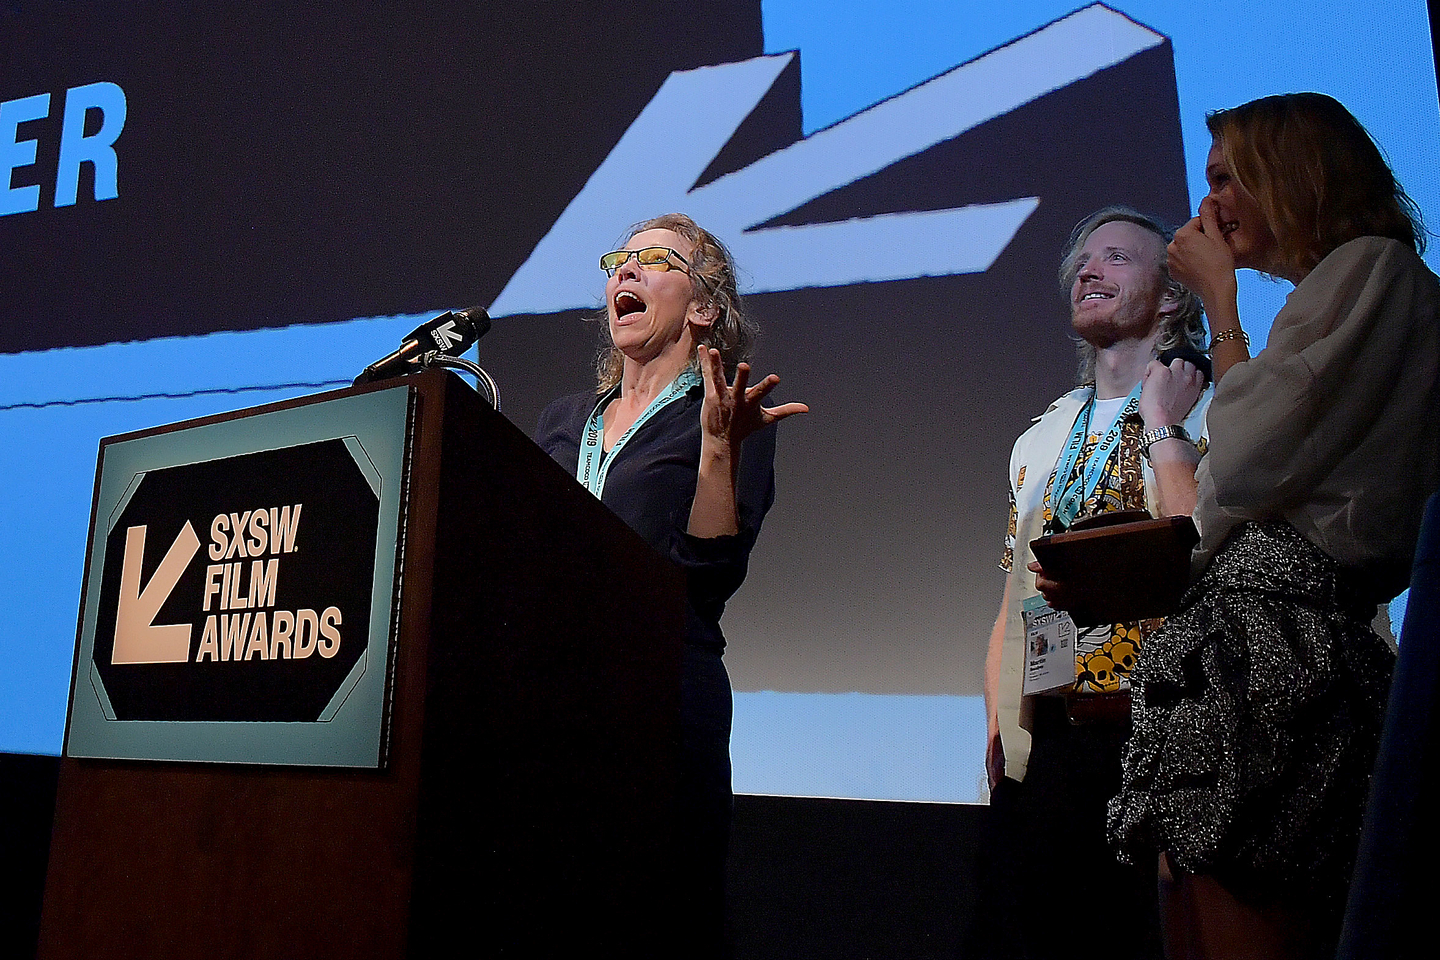 Josephine Mackerras accepts an award for her film Aliceat the SXSW Film Awards at the Paramount Theatre.